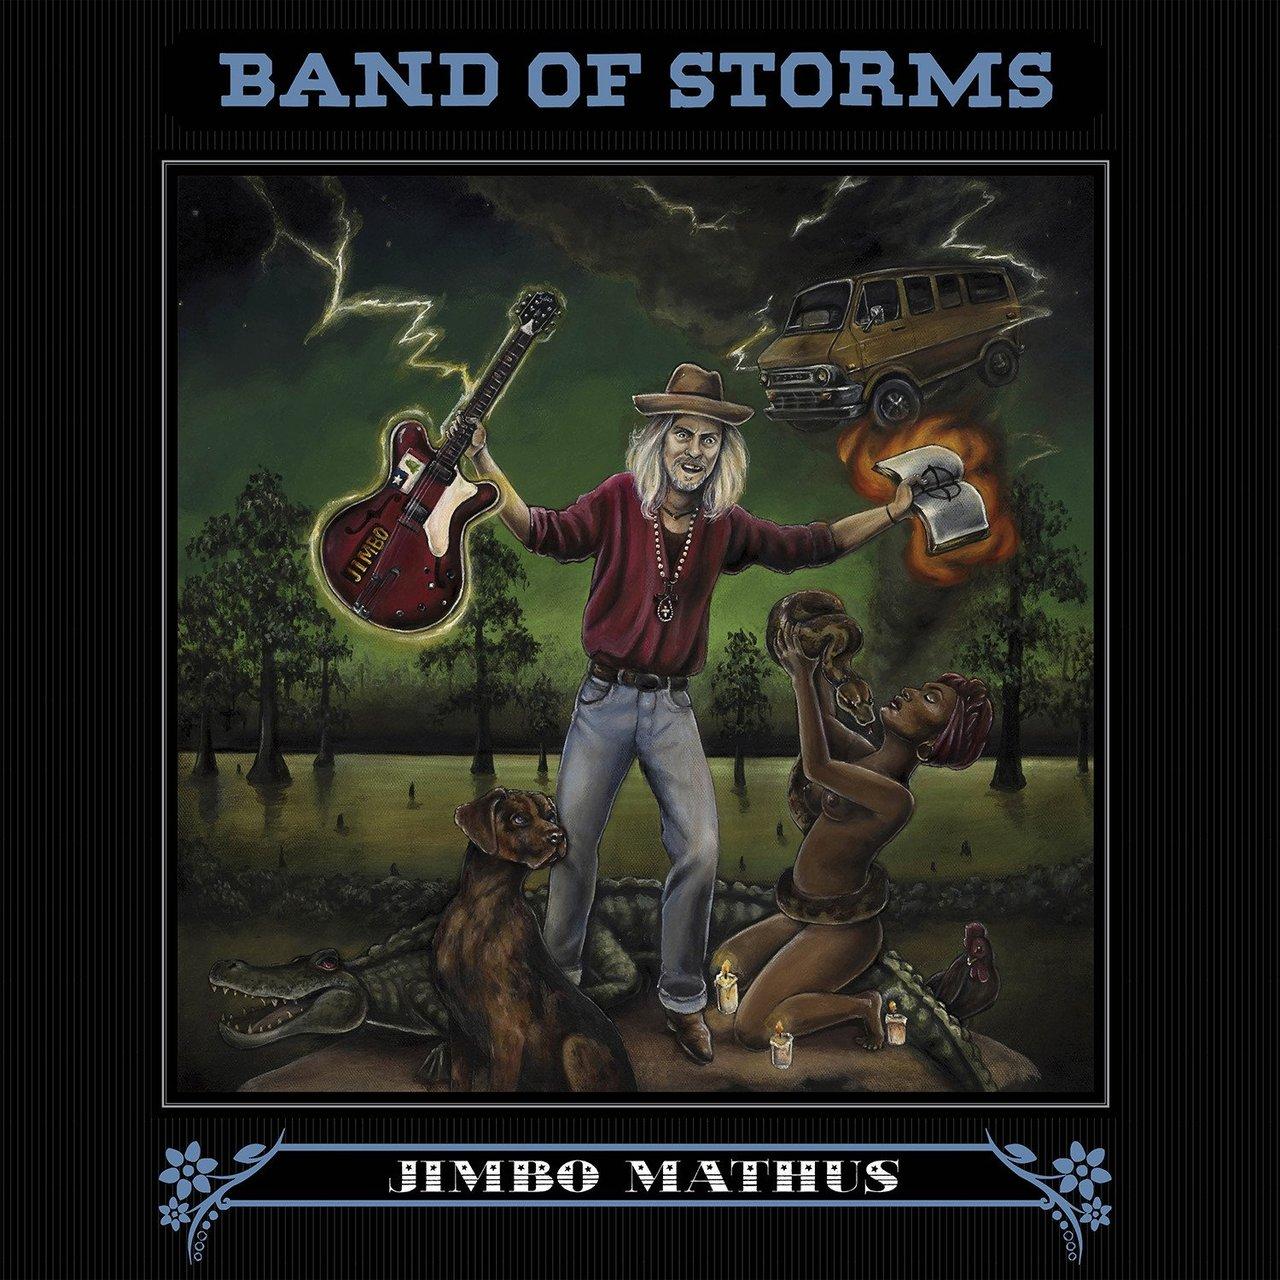 Bands of Storms - $17